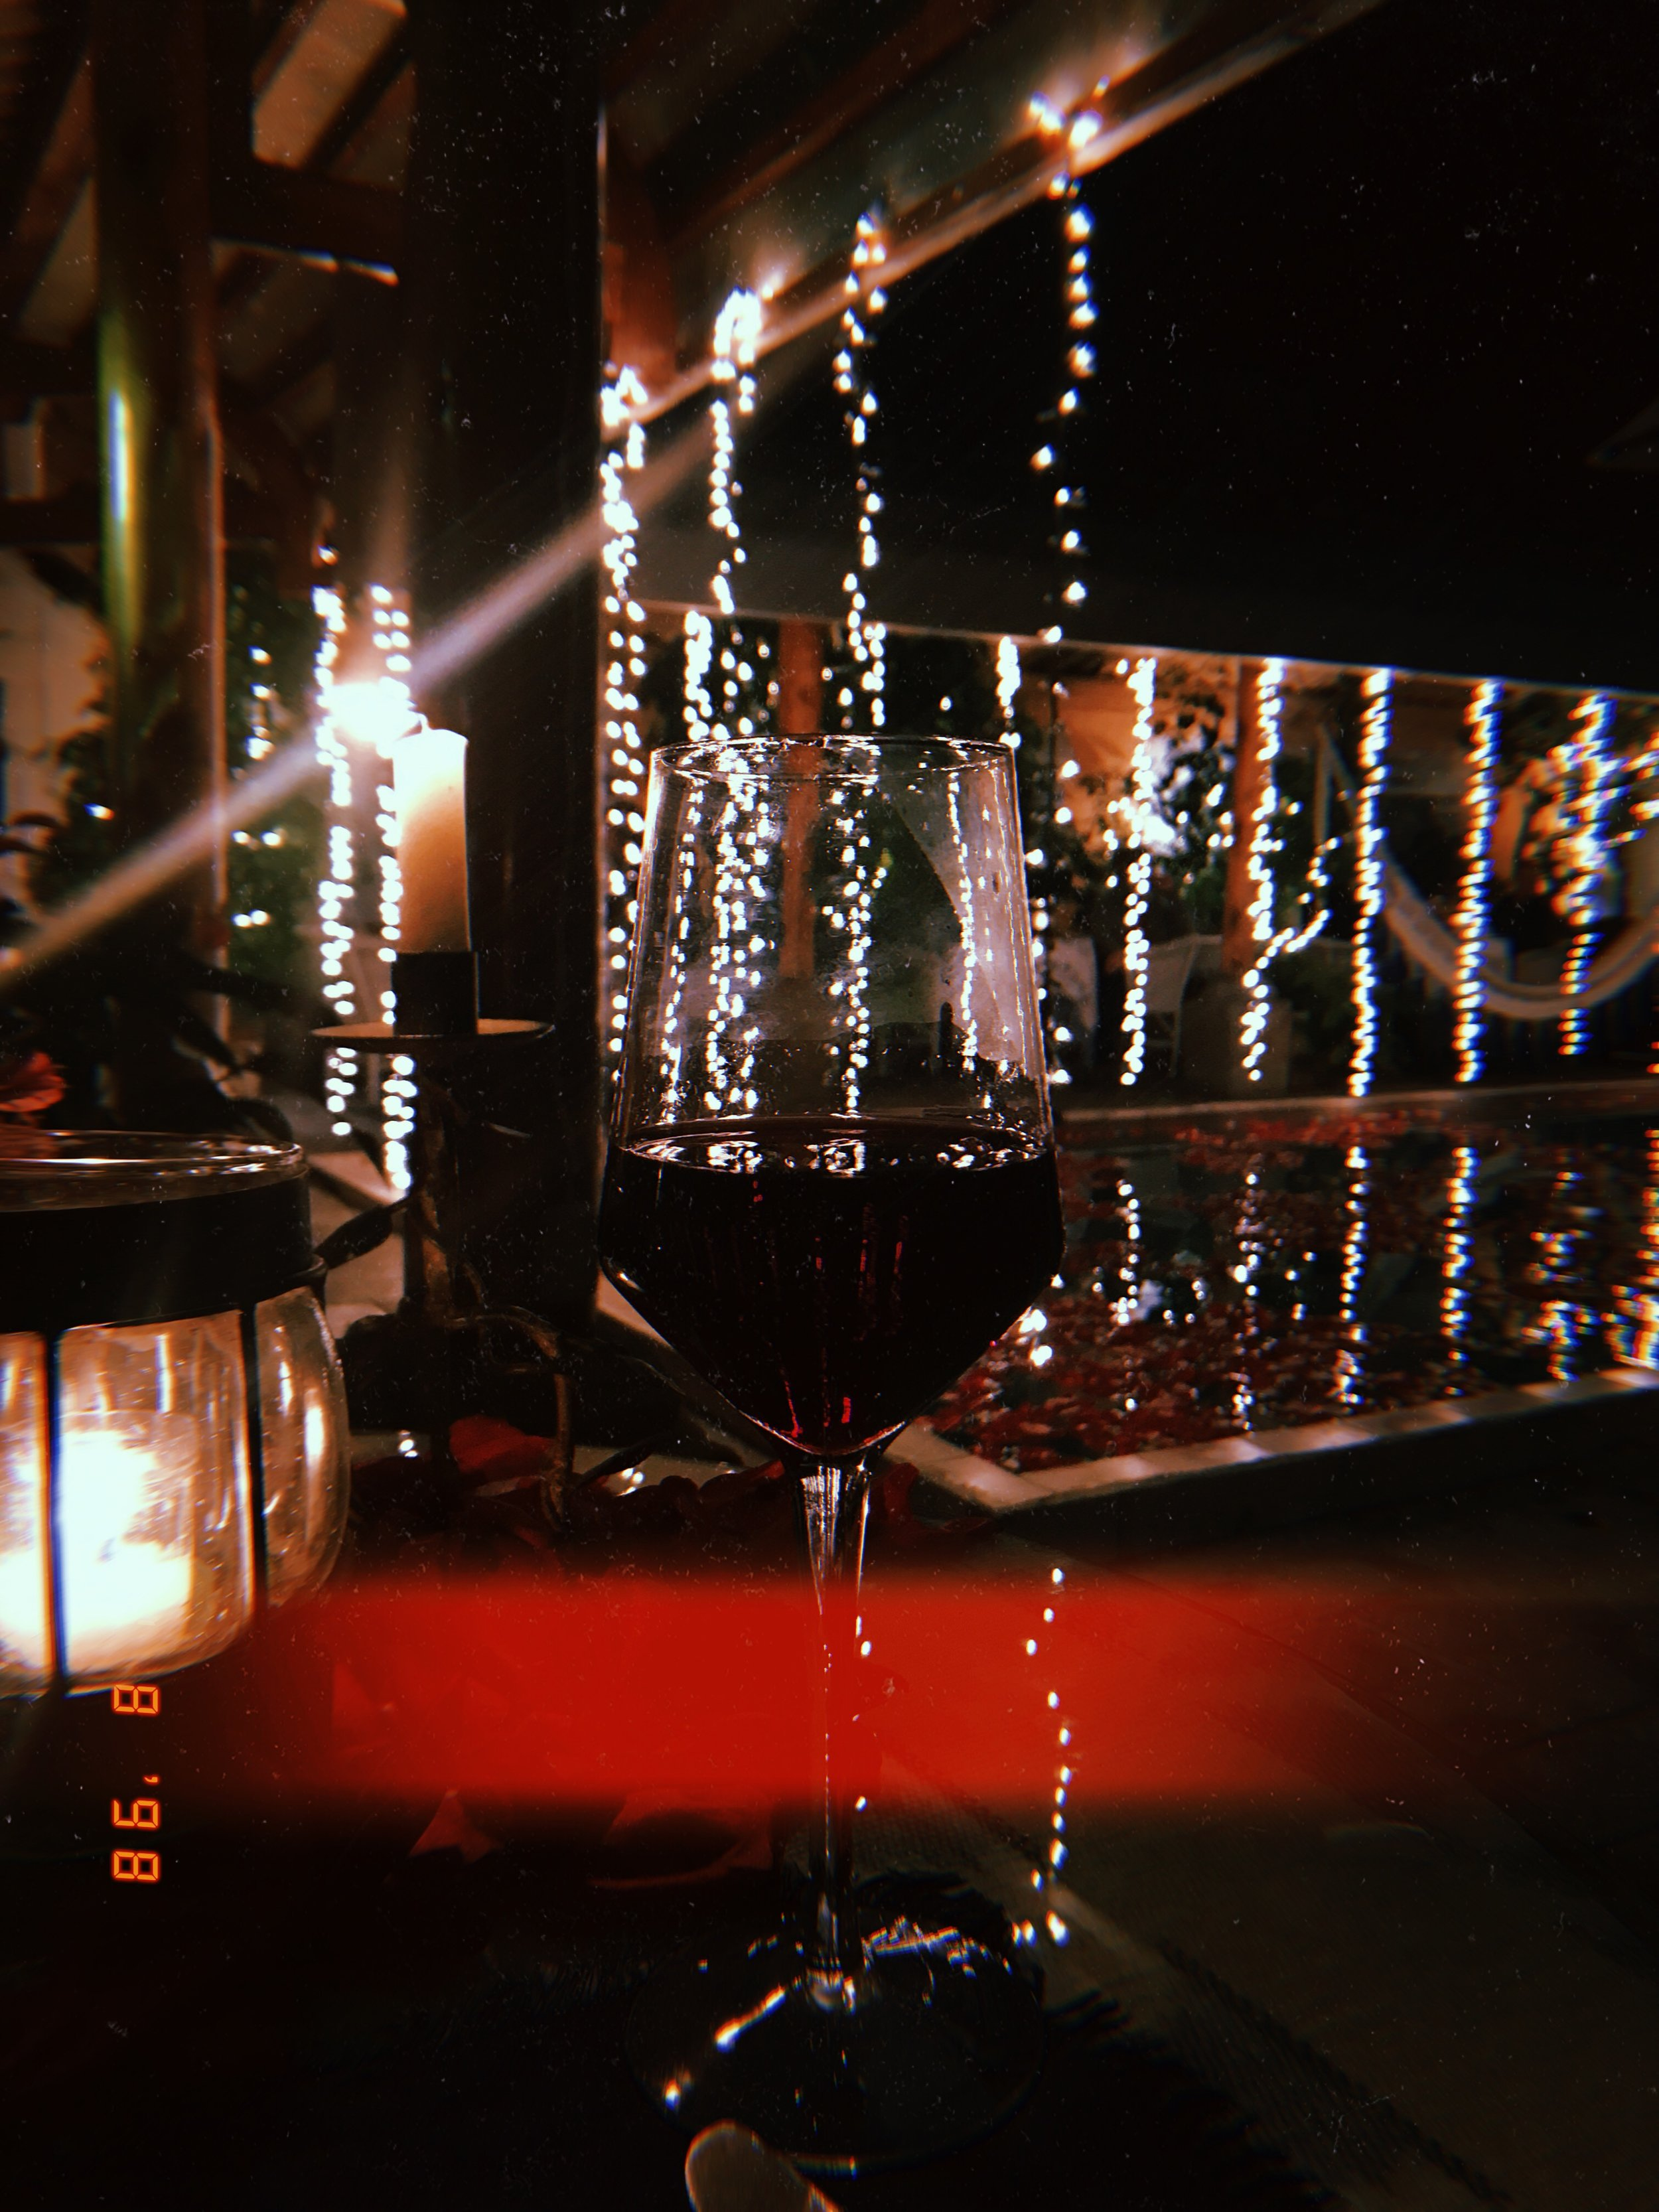 A quick glass of red next to the rose petal covered pool at Welten.